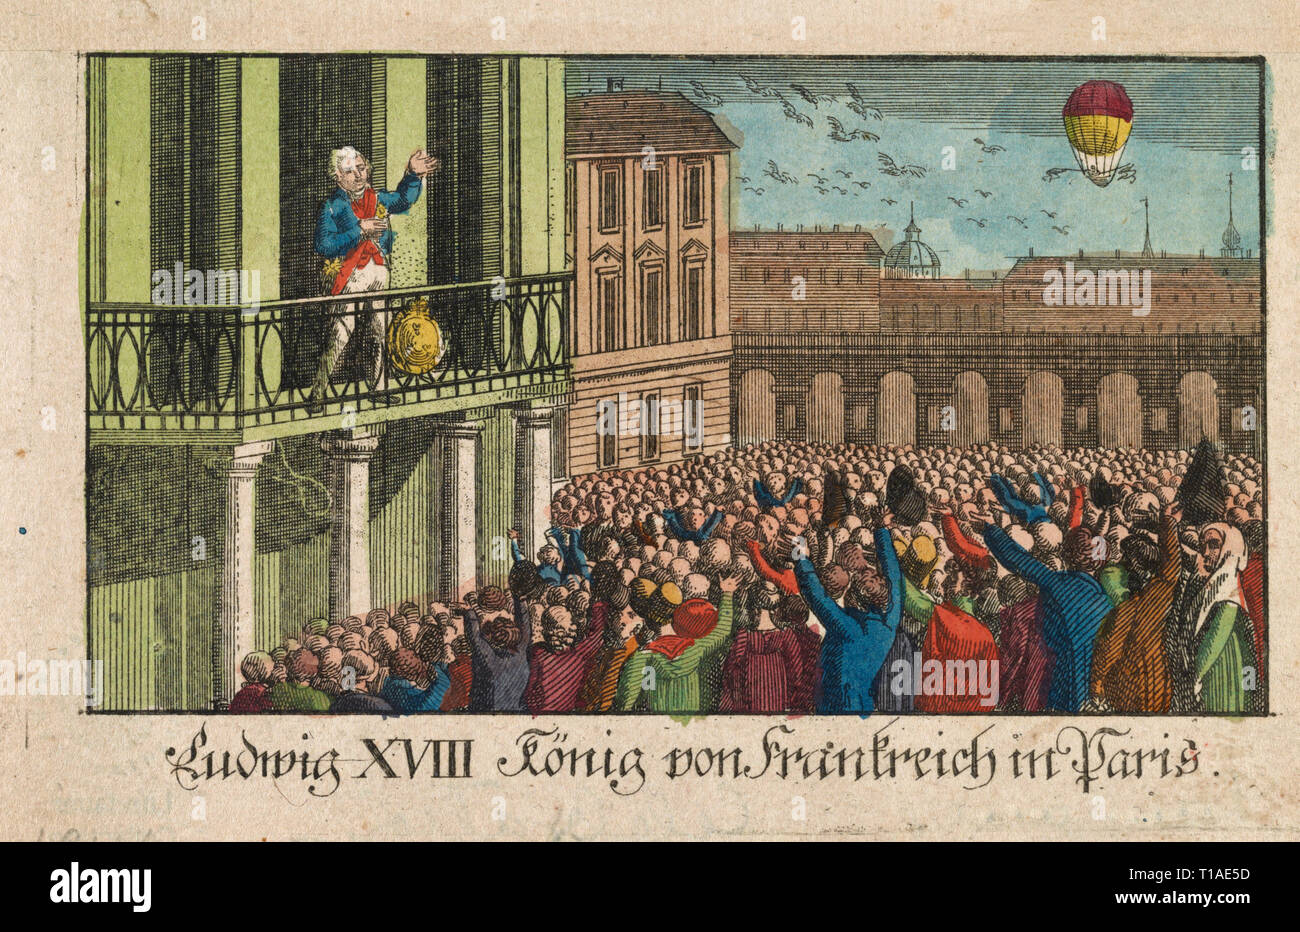 Print shows Madame Madeleine Sophie Blanchard in balloon above Pont Neuf, Paris, May 3, 1814, waving a flag in each hand to greet King Louis XVIII and the Queen on their return to Paris following the abdication of Napoleon. The King and Queen are seated in a carriage drawn by eight horses, escorted by cavalrymen. - Stock Image